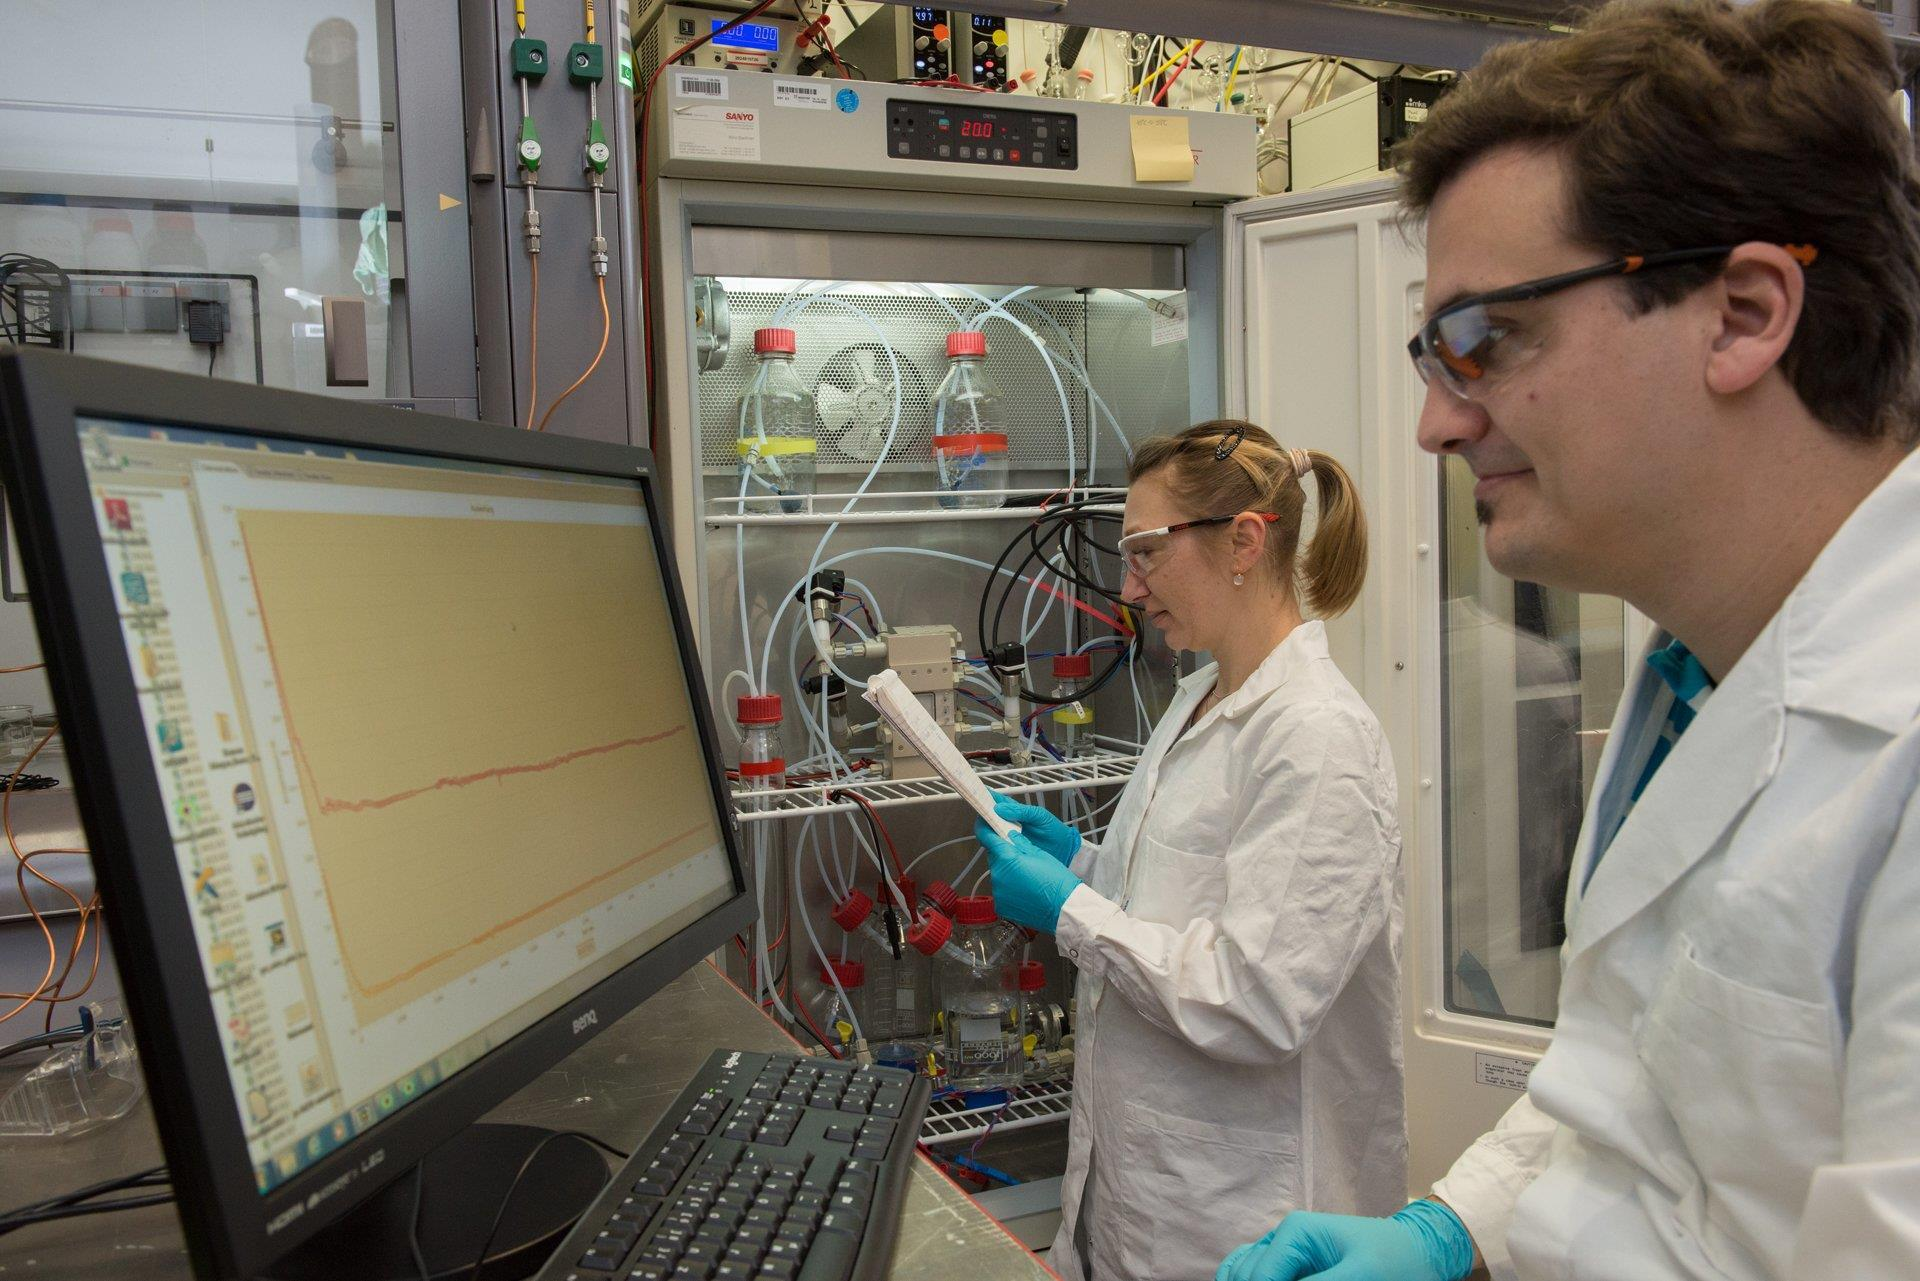 Evonik and Siemens launch Joint research project | News | gasworld